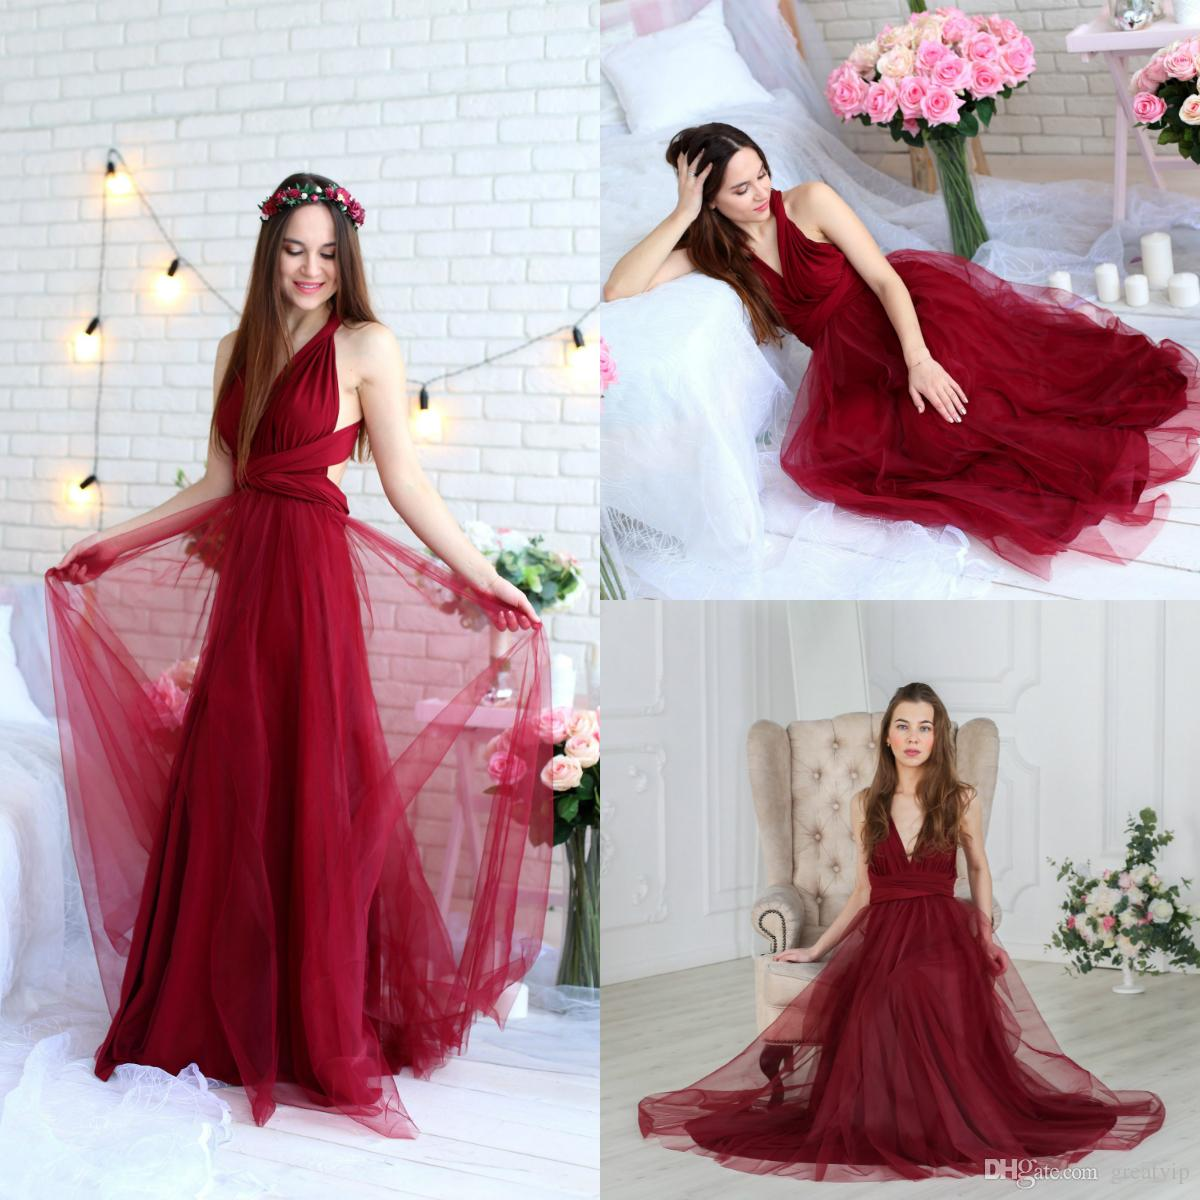 Burgundy A Line Bridesmaid Dresses Satin V Neck Tulle Overskirts Floor Length Formal Party Dress Plus Size Maid Of Honor Gowns